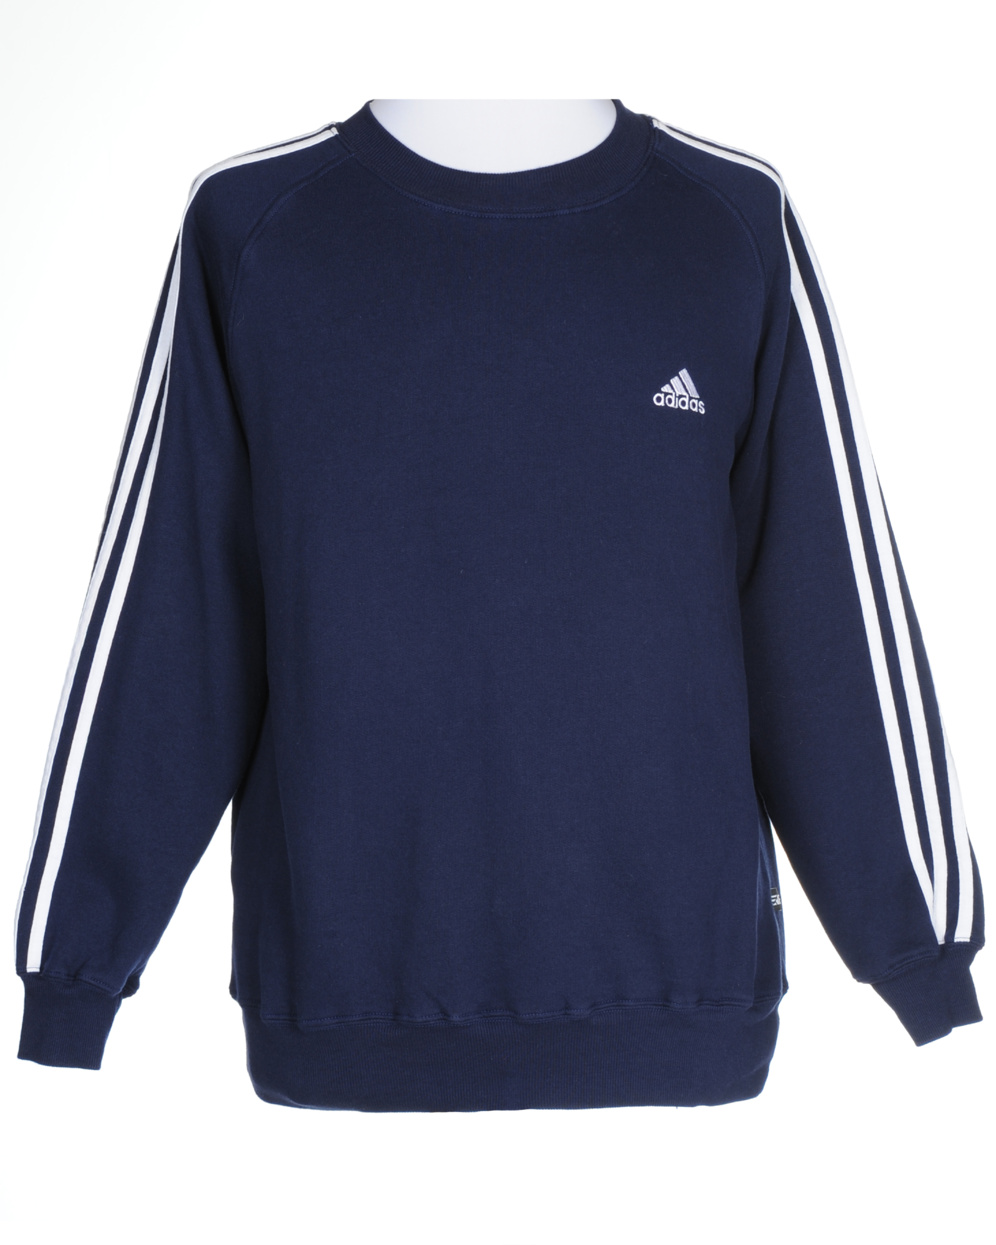 adidas navy sweatshirt s clothing rokit vintage clothing